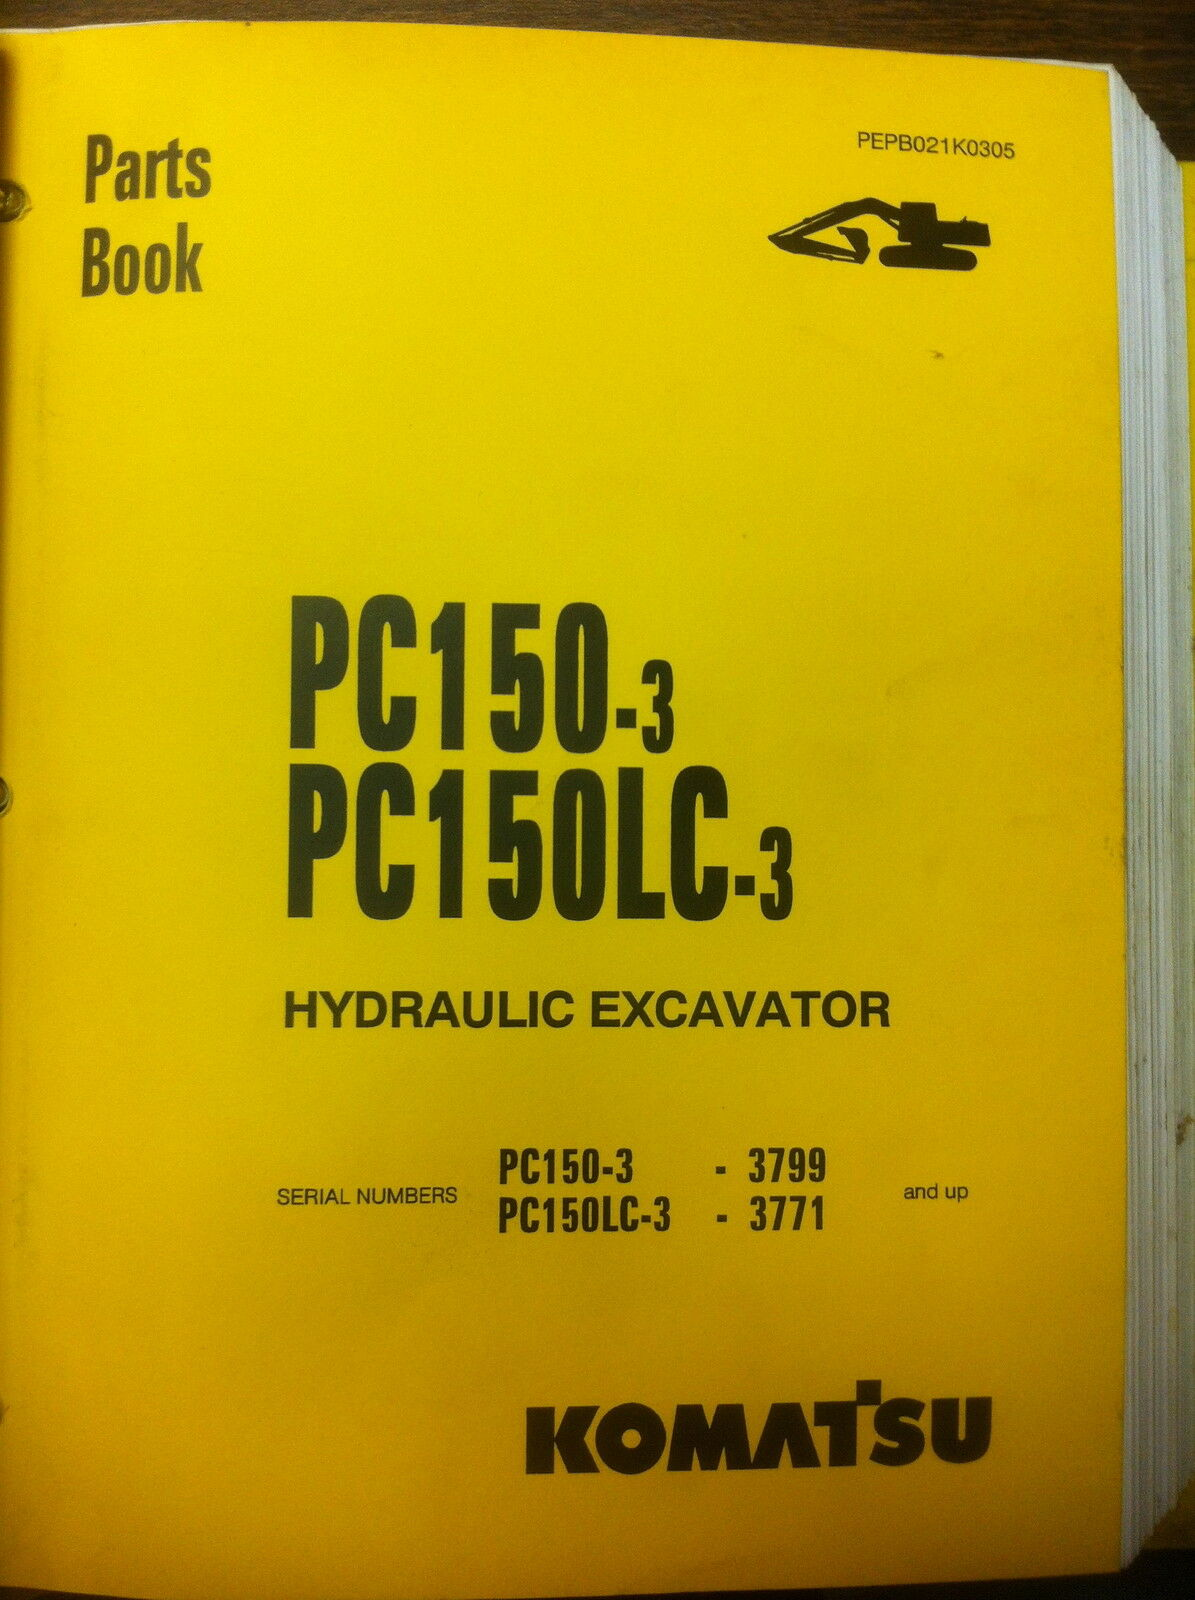 KOMATSU PC150-3 PC150LC-3 Hydraulic Excavator Parts Manual Book NEW 1 of 5  See More